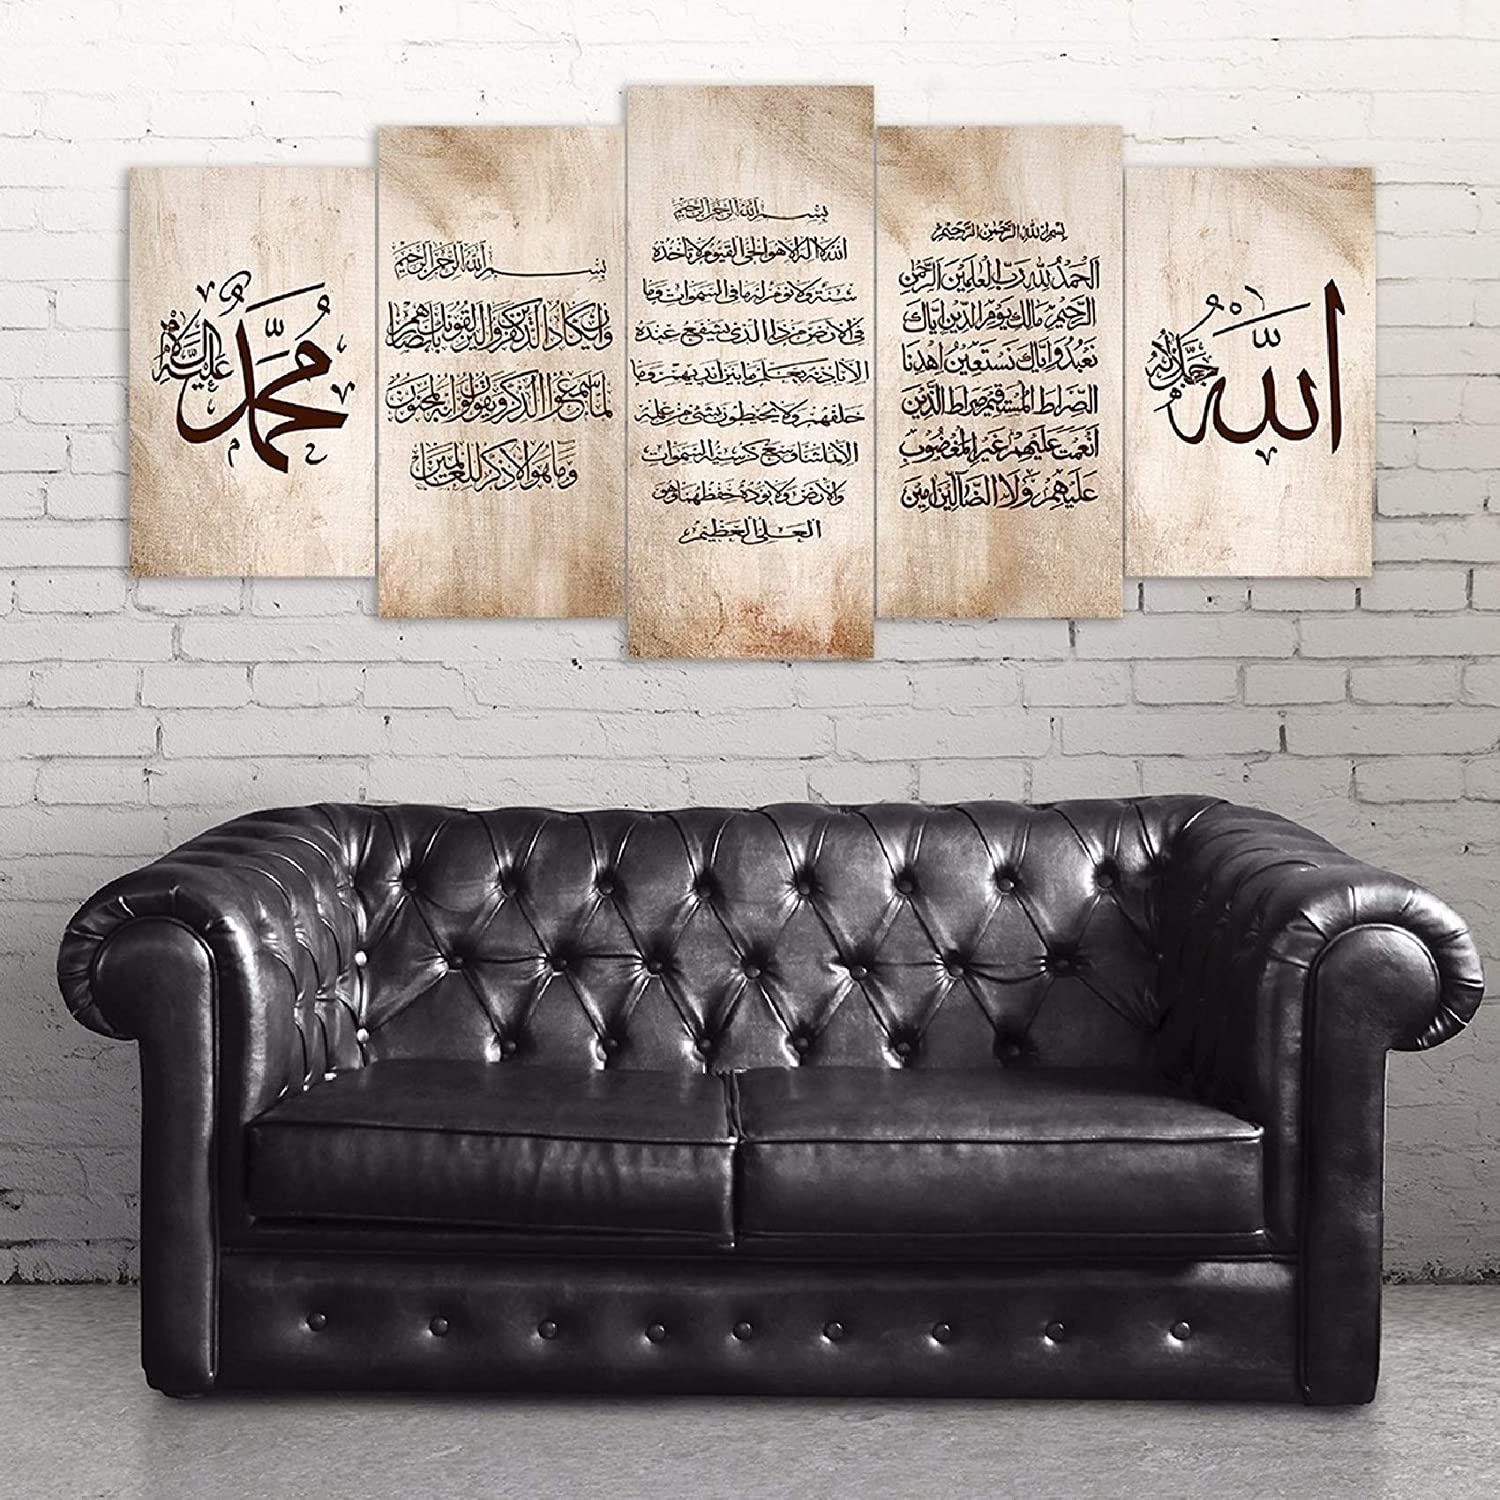 YOBESHO Islamic Canvas Wall Art,5 Pieces Islamic Art Canvas, Islamic Home Decor, Islamic Gifts (Ayatul Kursi (150x70cm) 60x28inches)